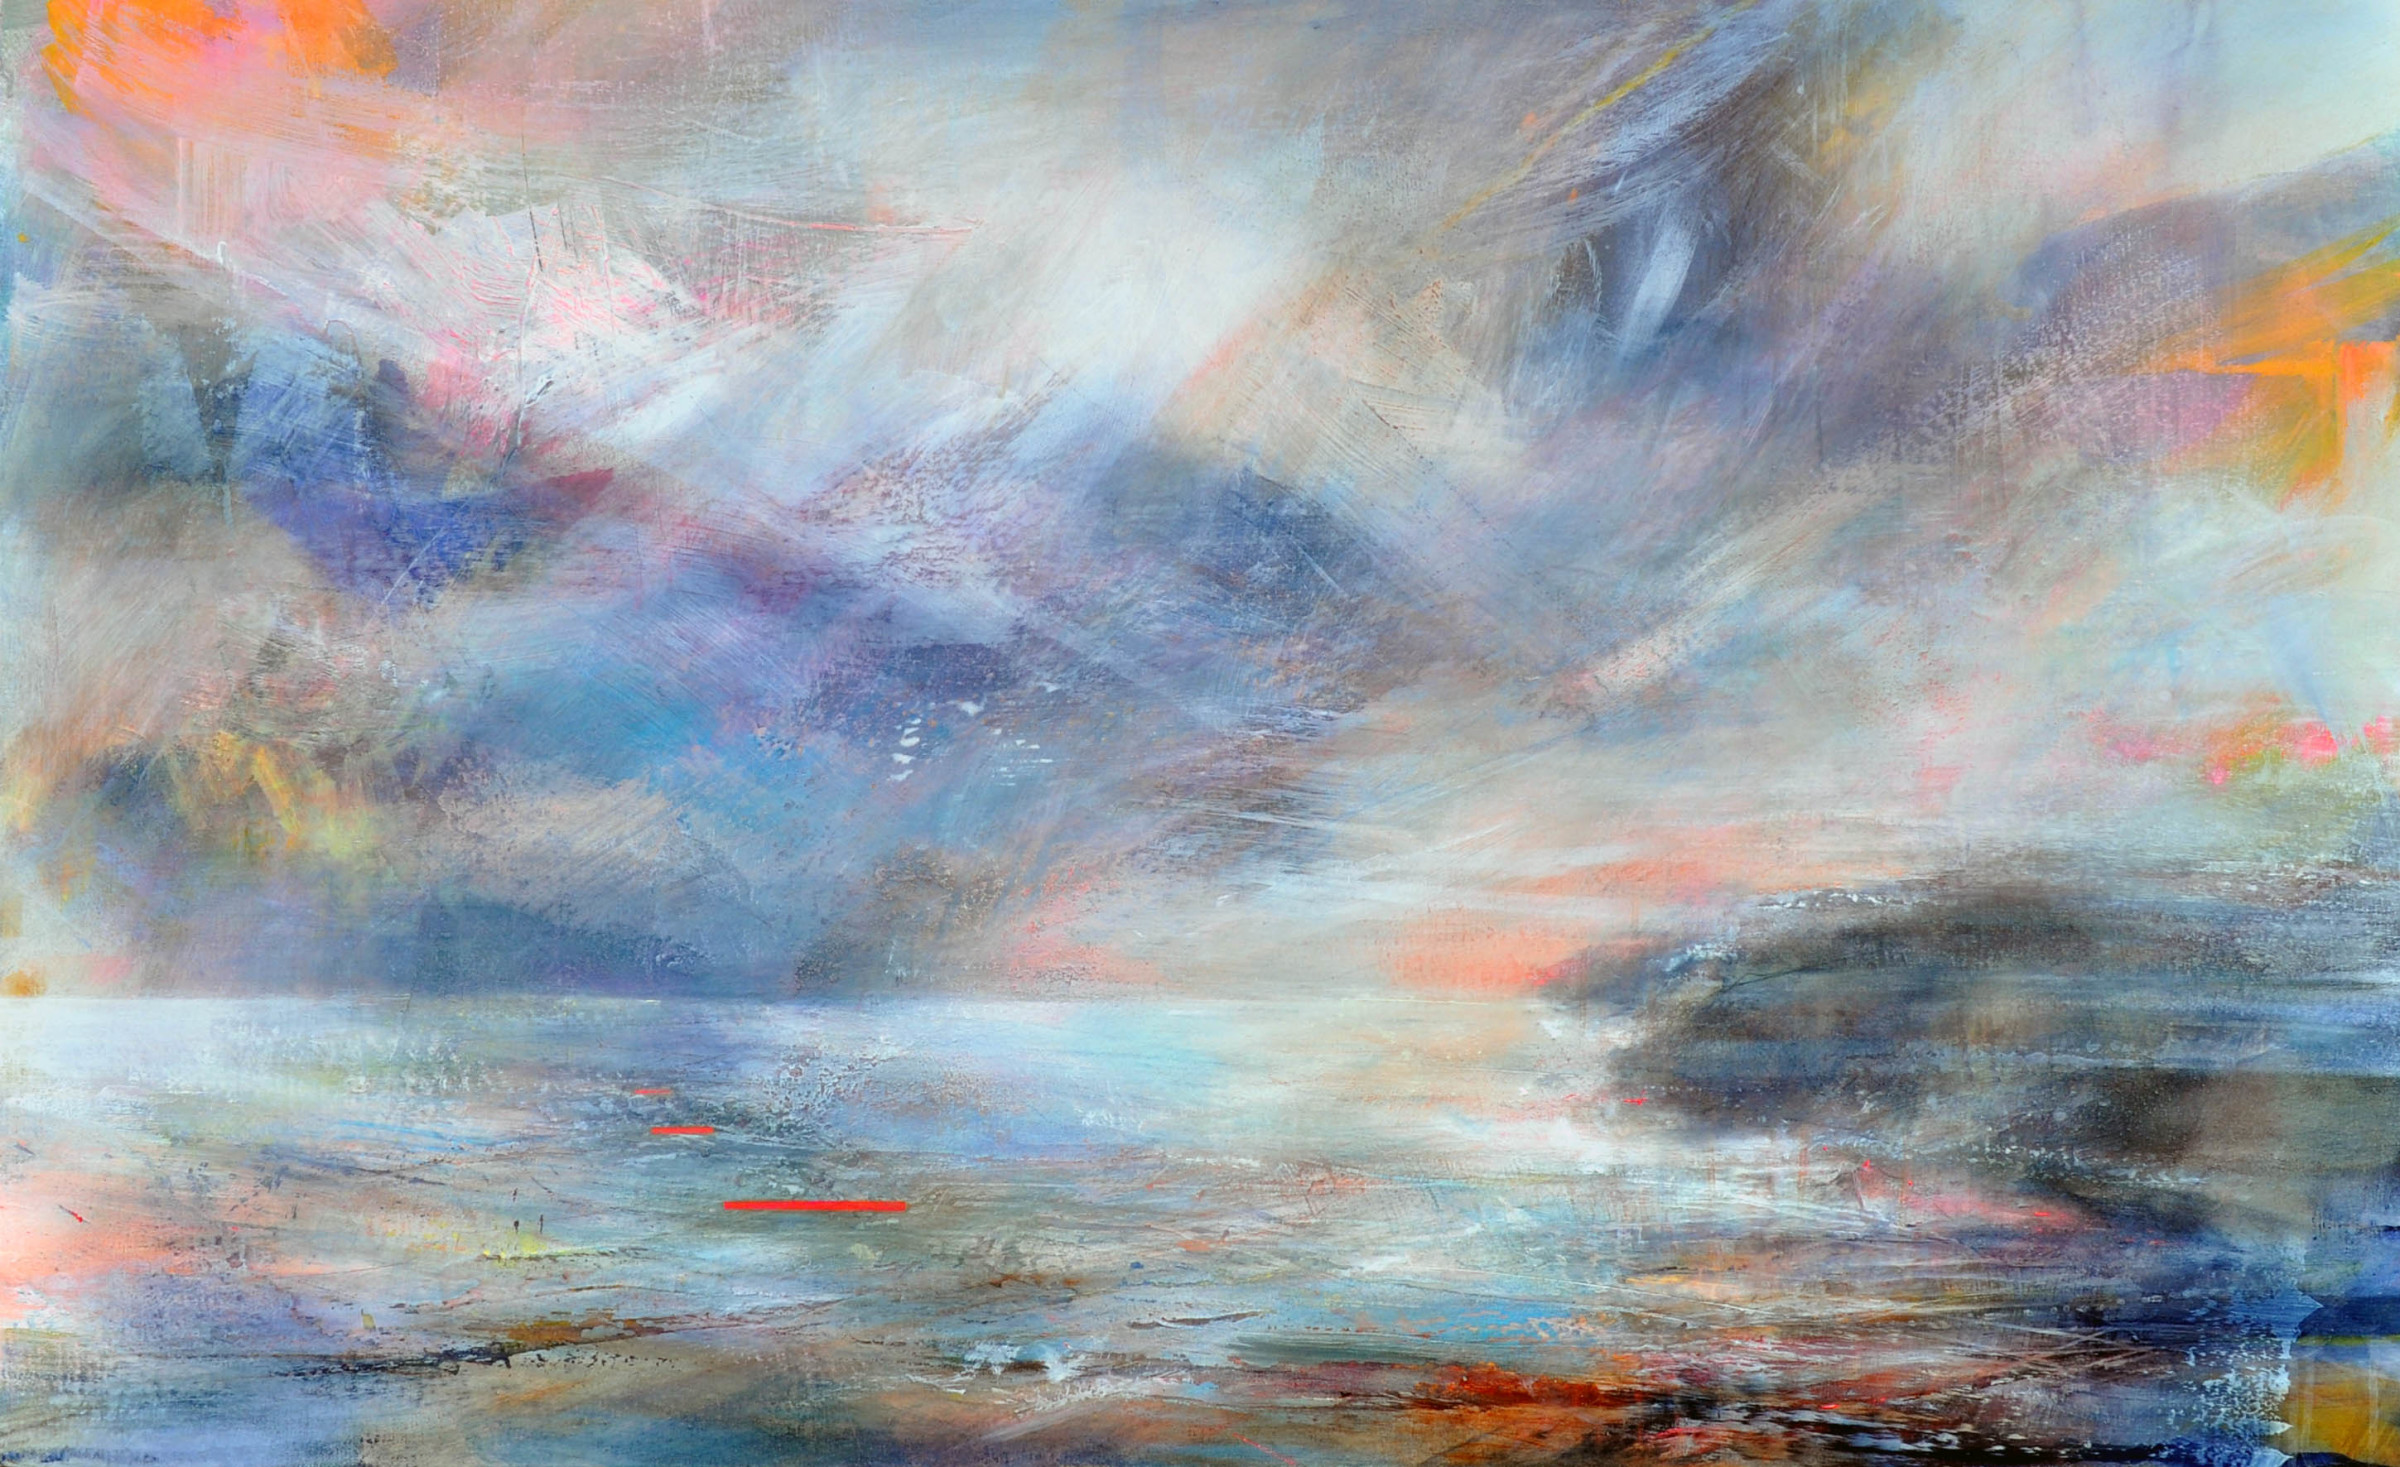 "<span class=""link fancybox-details-link""><a href=""/artists/90-freya-horsley/works/6258-freya-horsley-lingering-light-2019/"">View Detail Page</a></span><div class=""artist""><strong>Freya Horsley</strong></div> <div class=""title""><em>Lingering Light</em>, 2019</div> <div class=""medium"">Mixed media on canvas</div> <div class=""dimensions"">70 x 113 cm</div><div class=""copyright_line"">Own Art £175 x 10 months, 0% APR</div>"